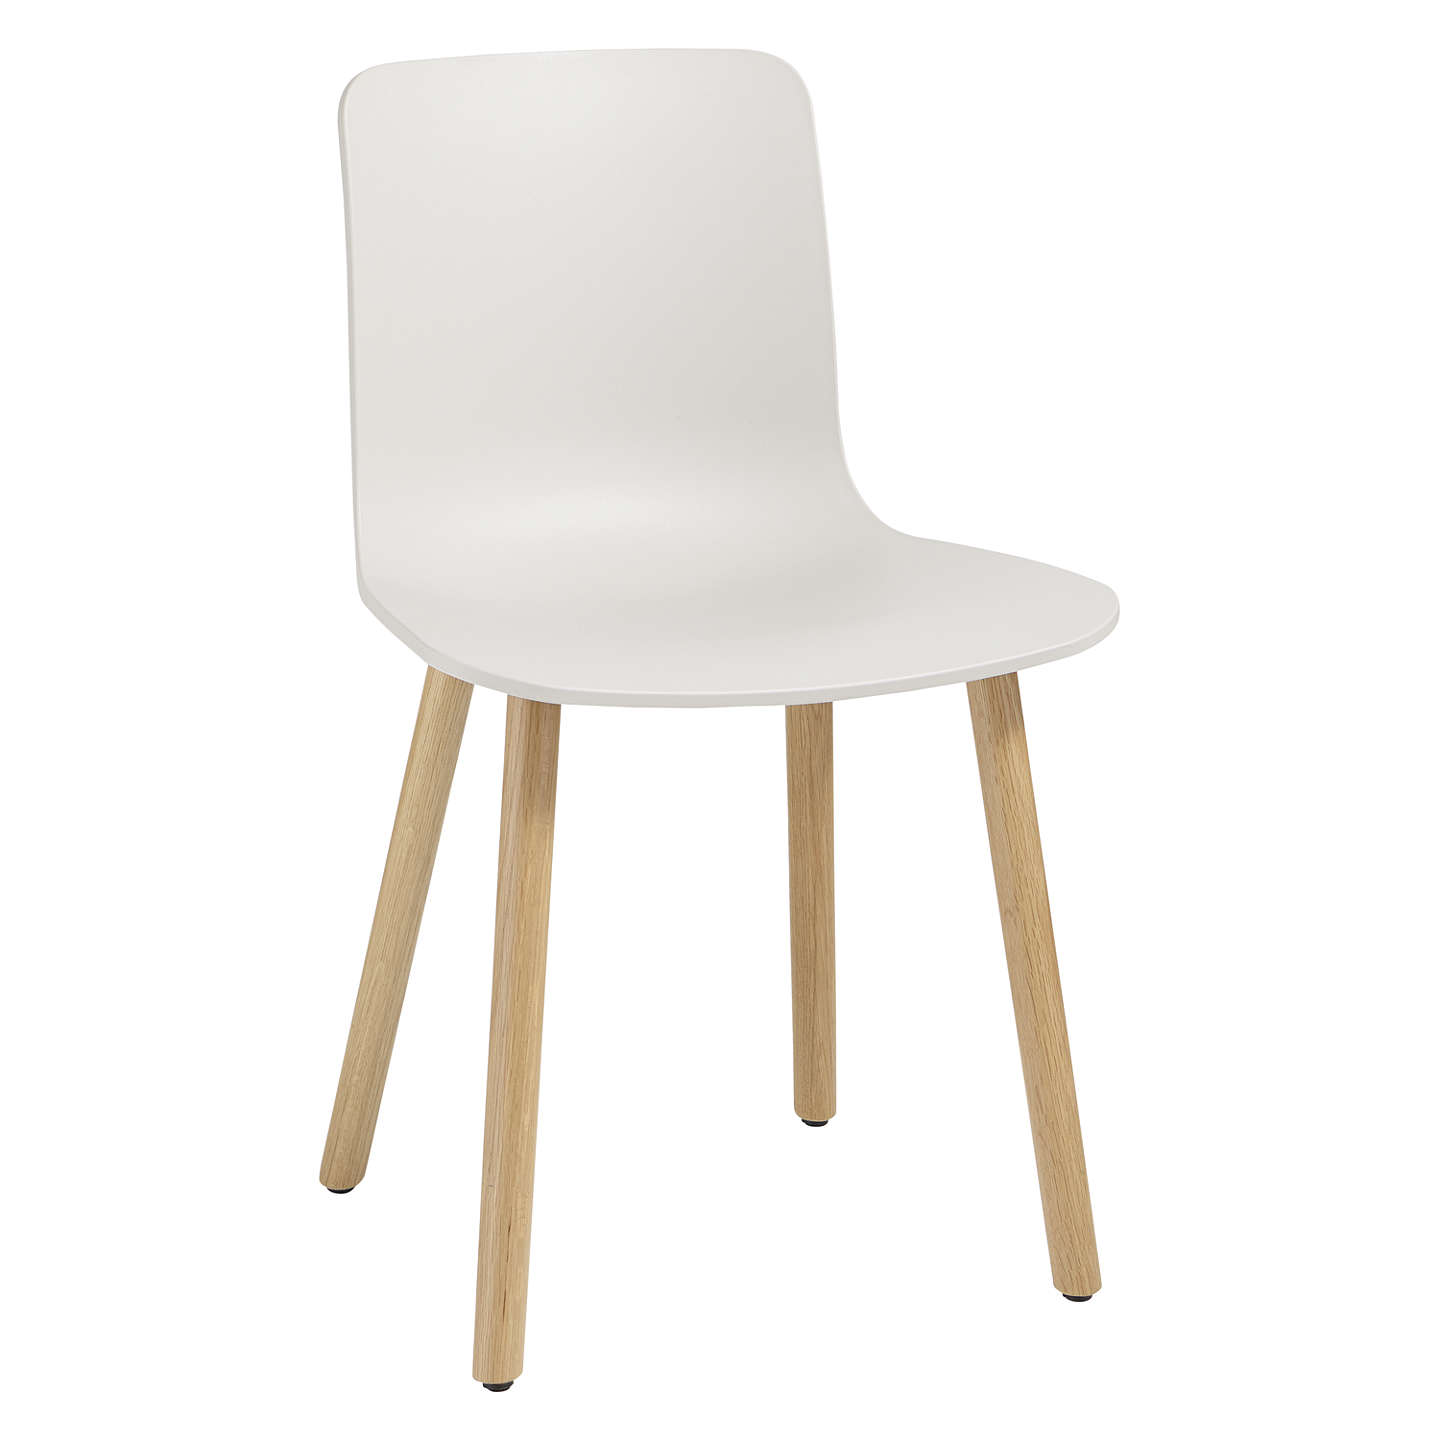 vitra hal chair warm grey light oak at john lewis. Black Bedroom Furniture Sets. Home Design Ideas